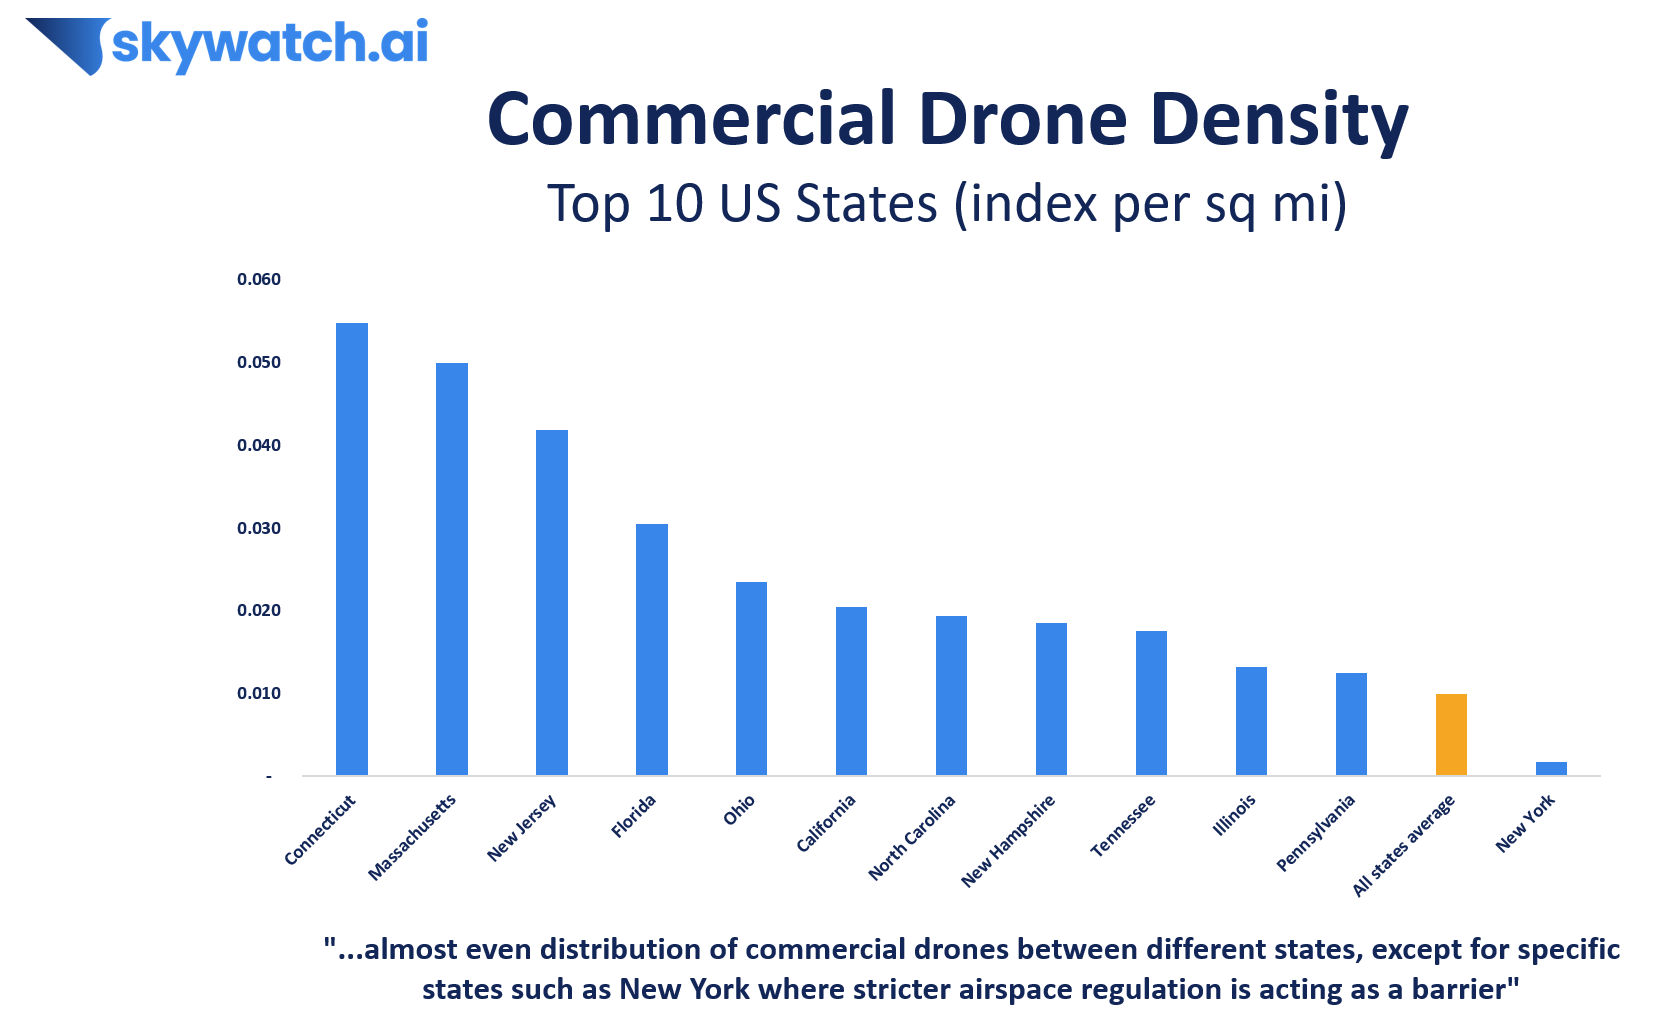 US Commercial Drone Density Analysis